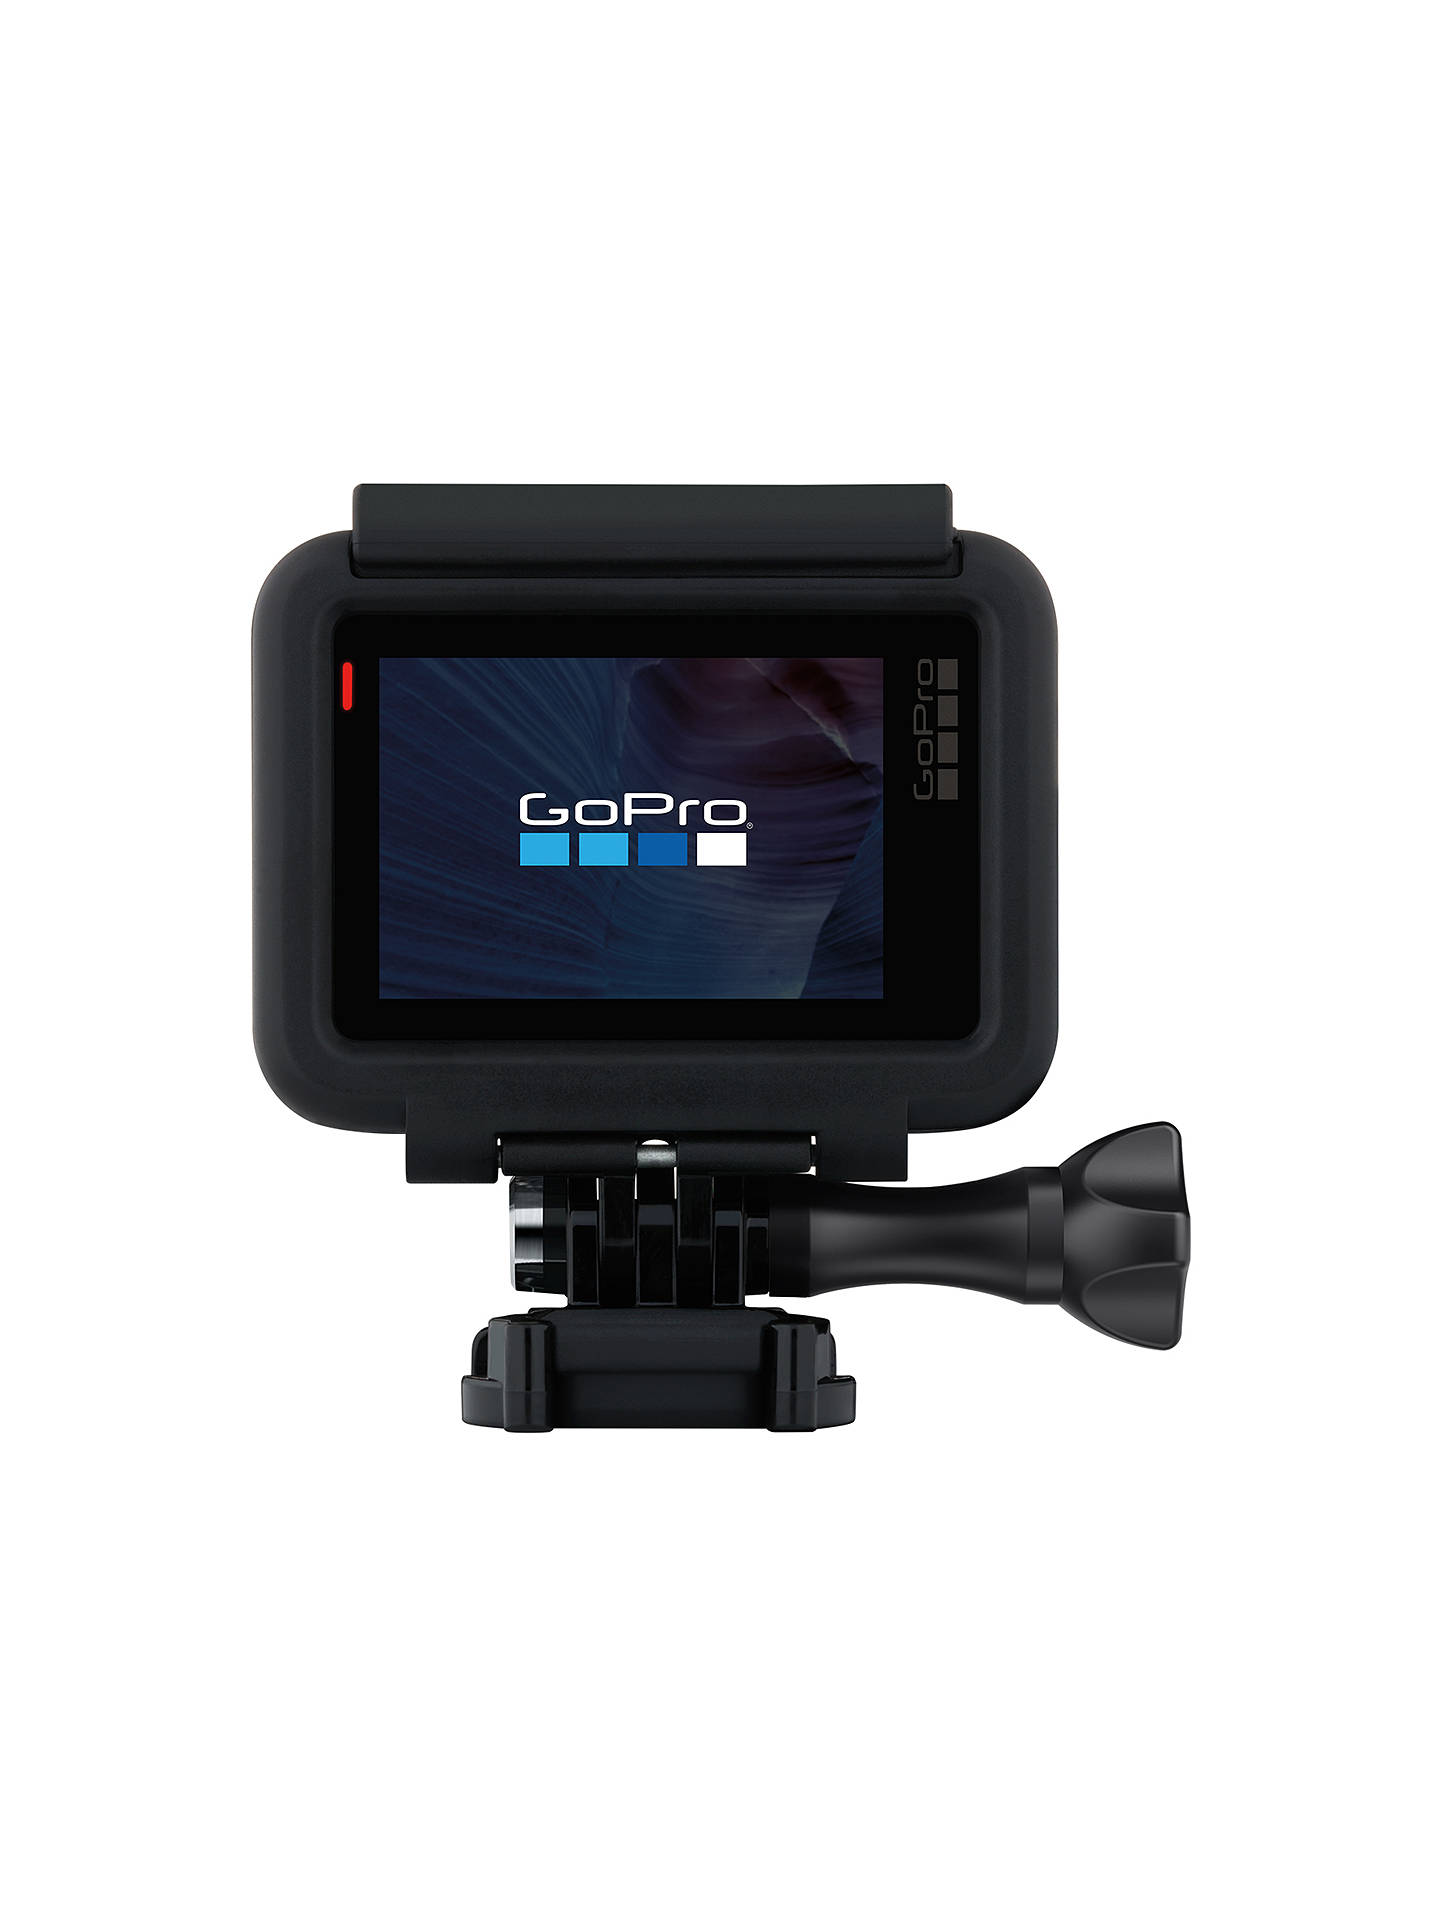 BuyGoPro Hero 5 Black Edition Camcorder, 4K Ultra HD, 12MP, Wi-Fi, Waterproof, GPS Online at johnlewis.com